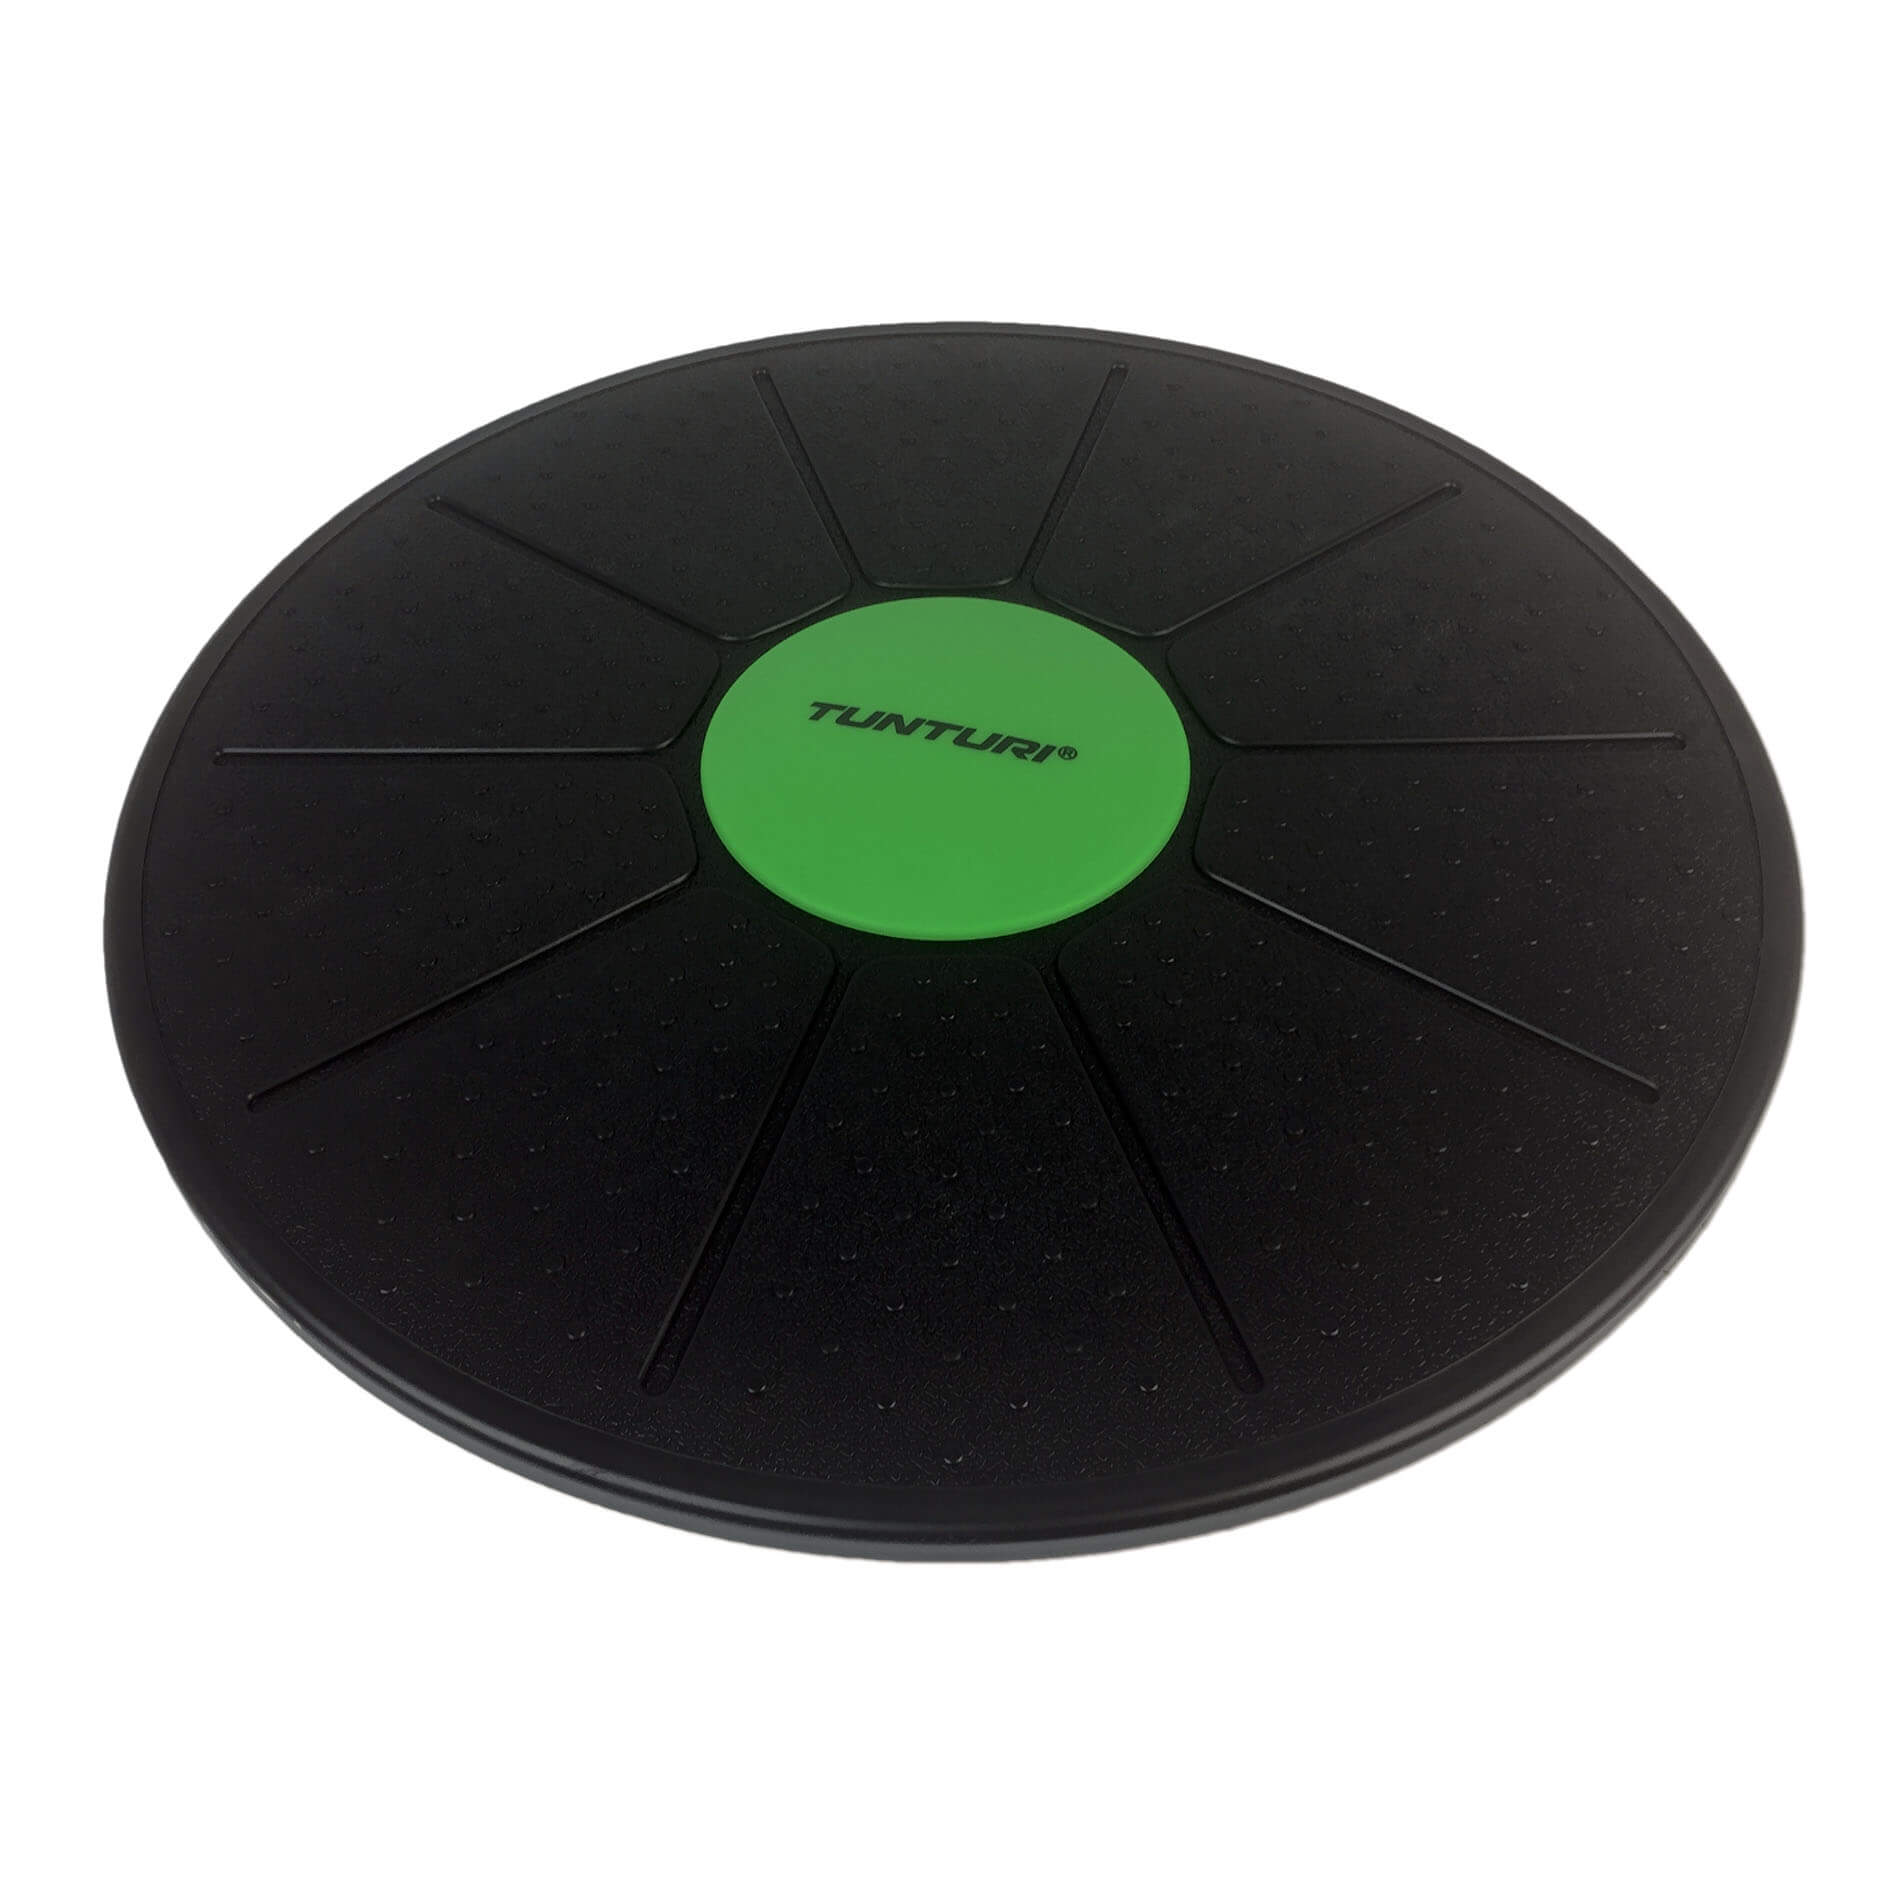 Adjustable Balance Board